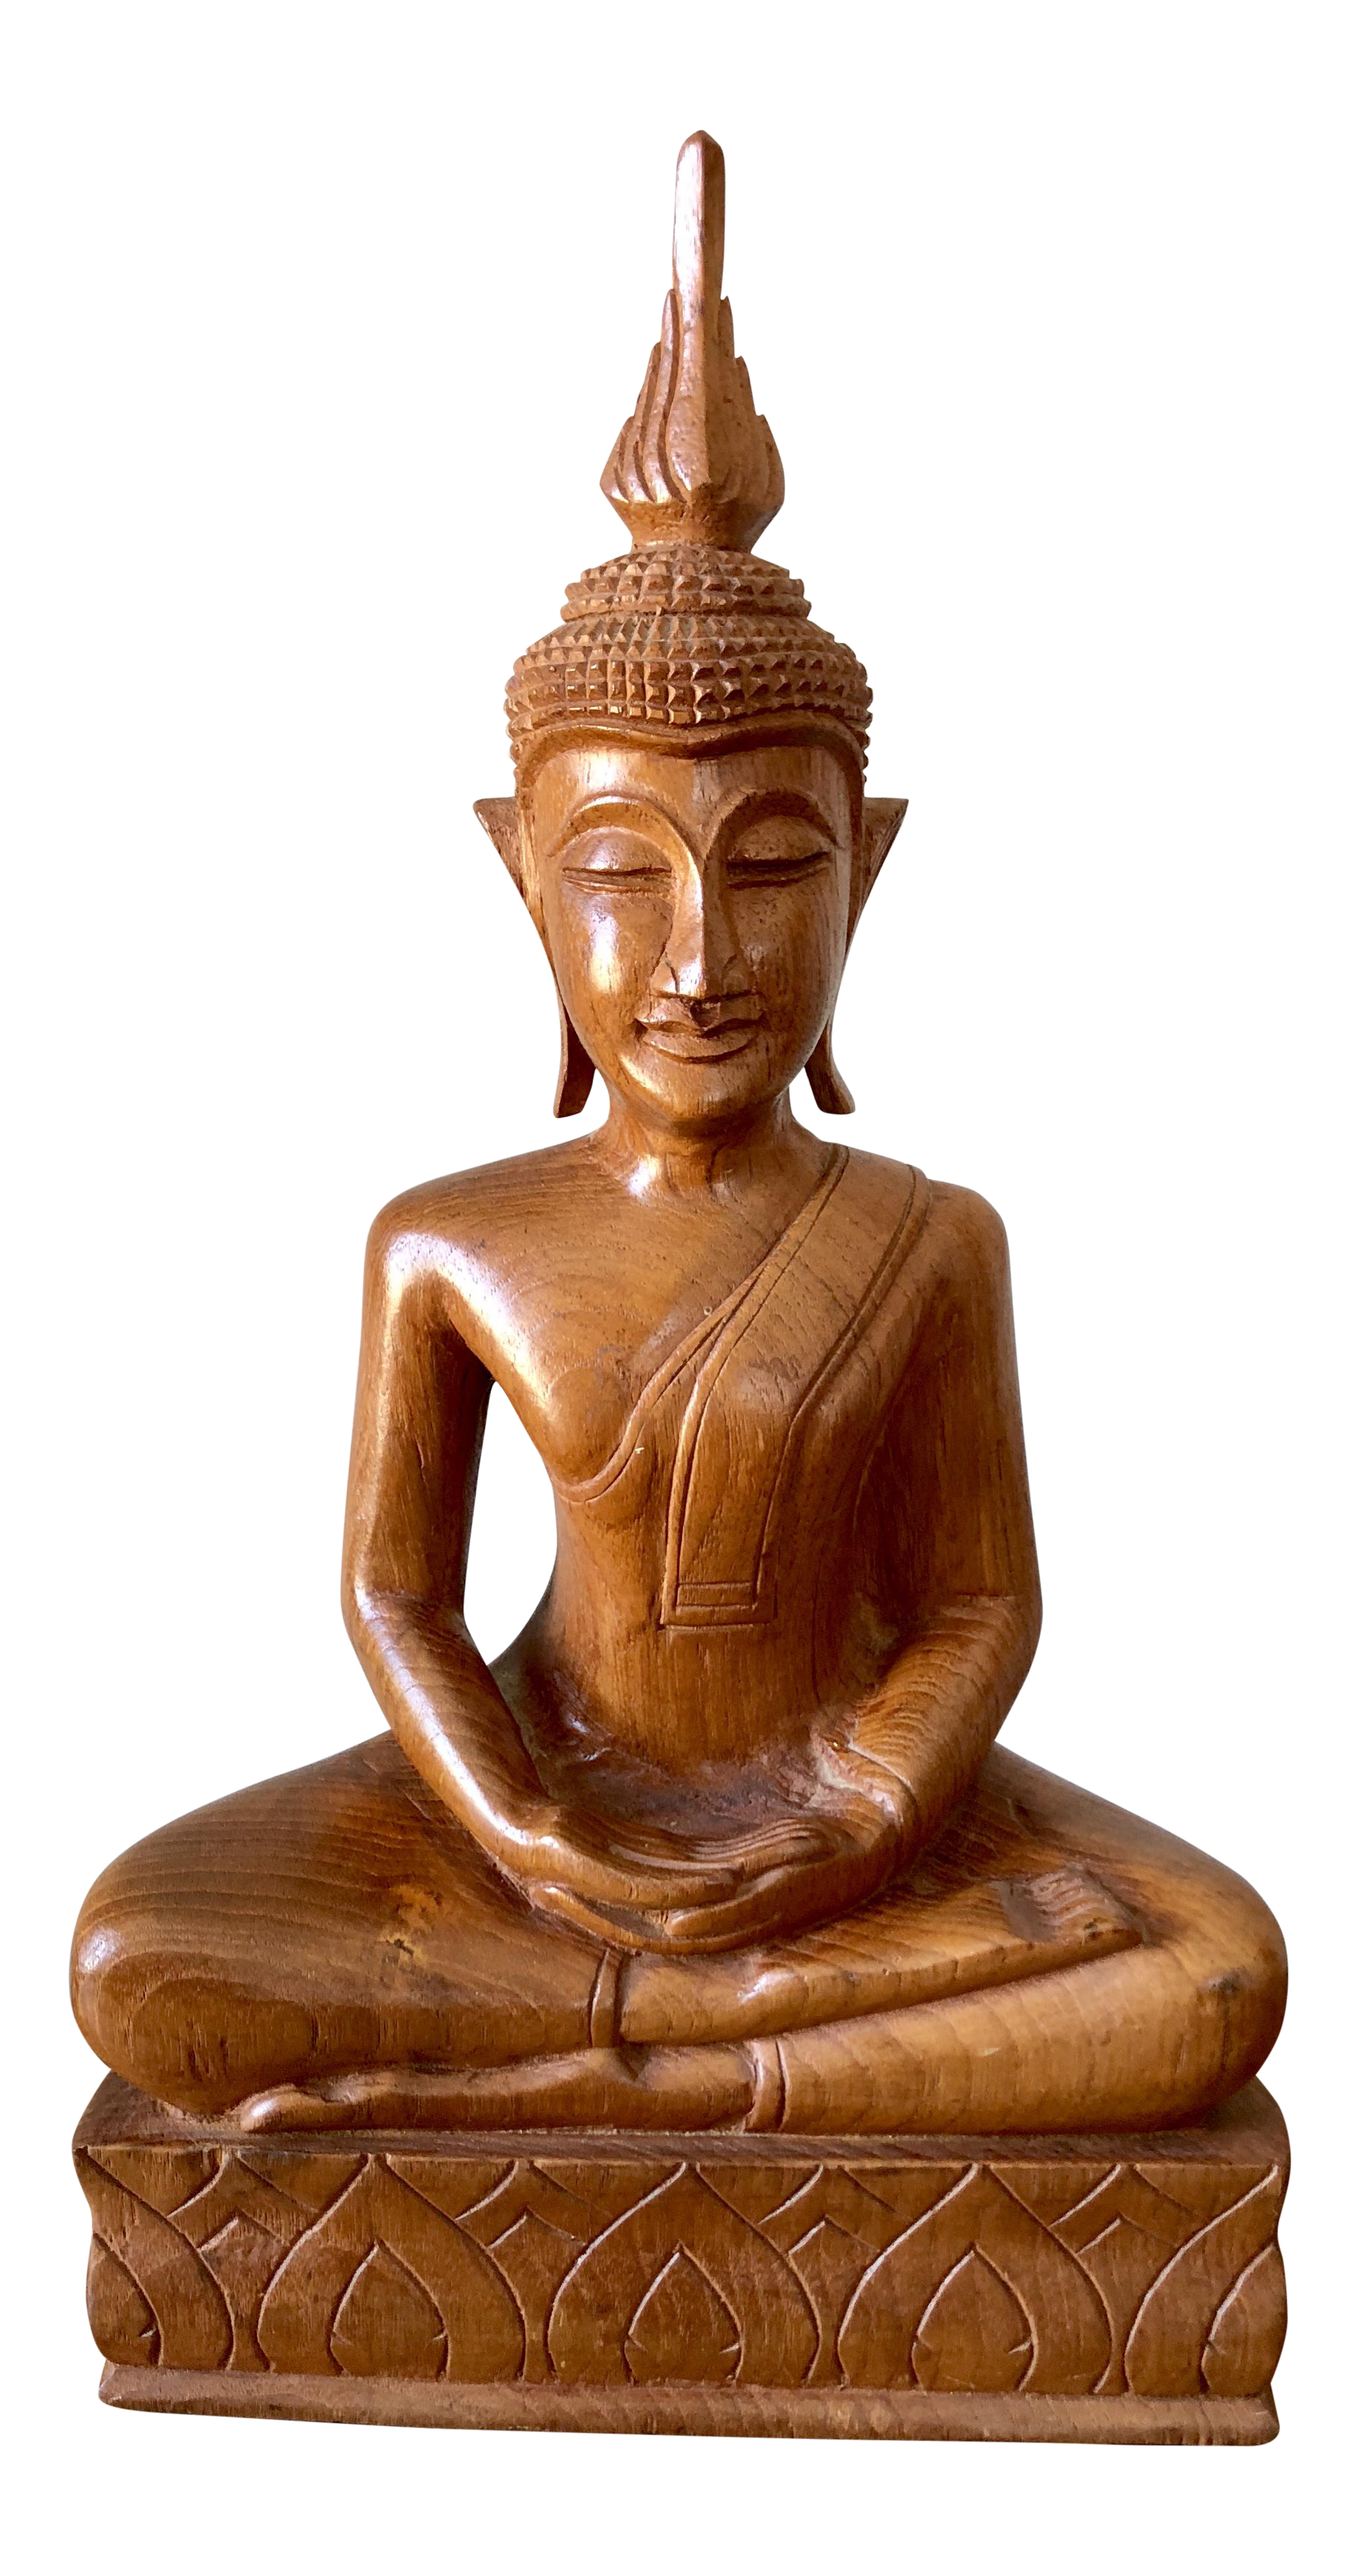 guanare buddhist singles Buddhist singles - careful examination of the online dating services will most often determine your success rate since online dating is concerned they specialize in promoting some of the best dating sites on the web, which in turn help those sites draw money.